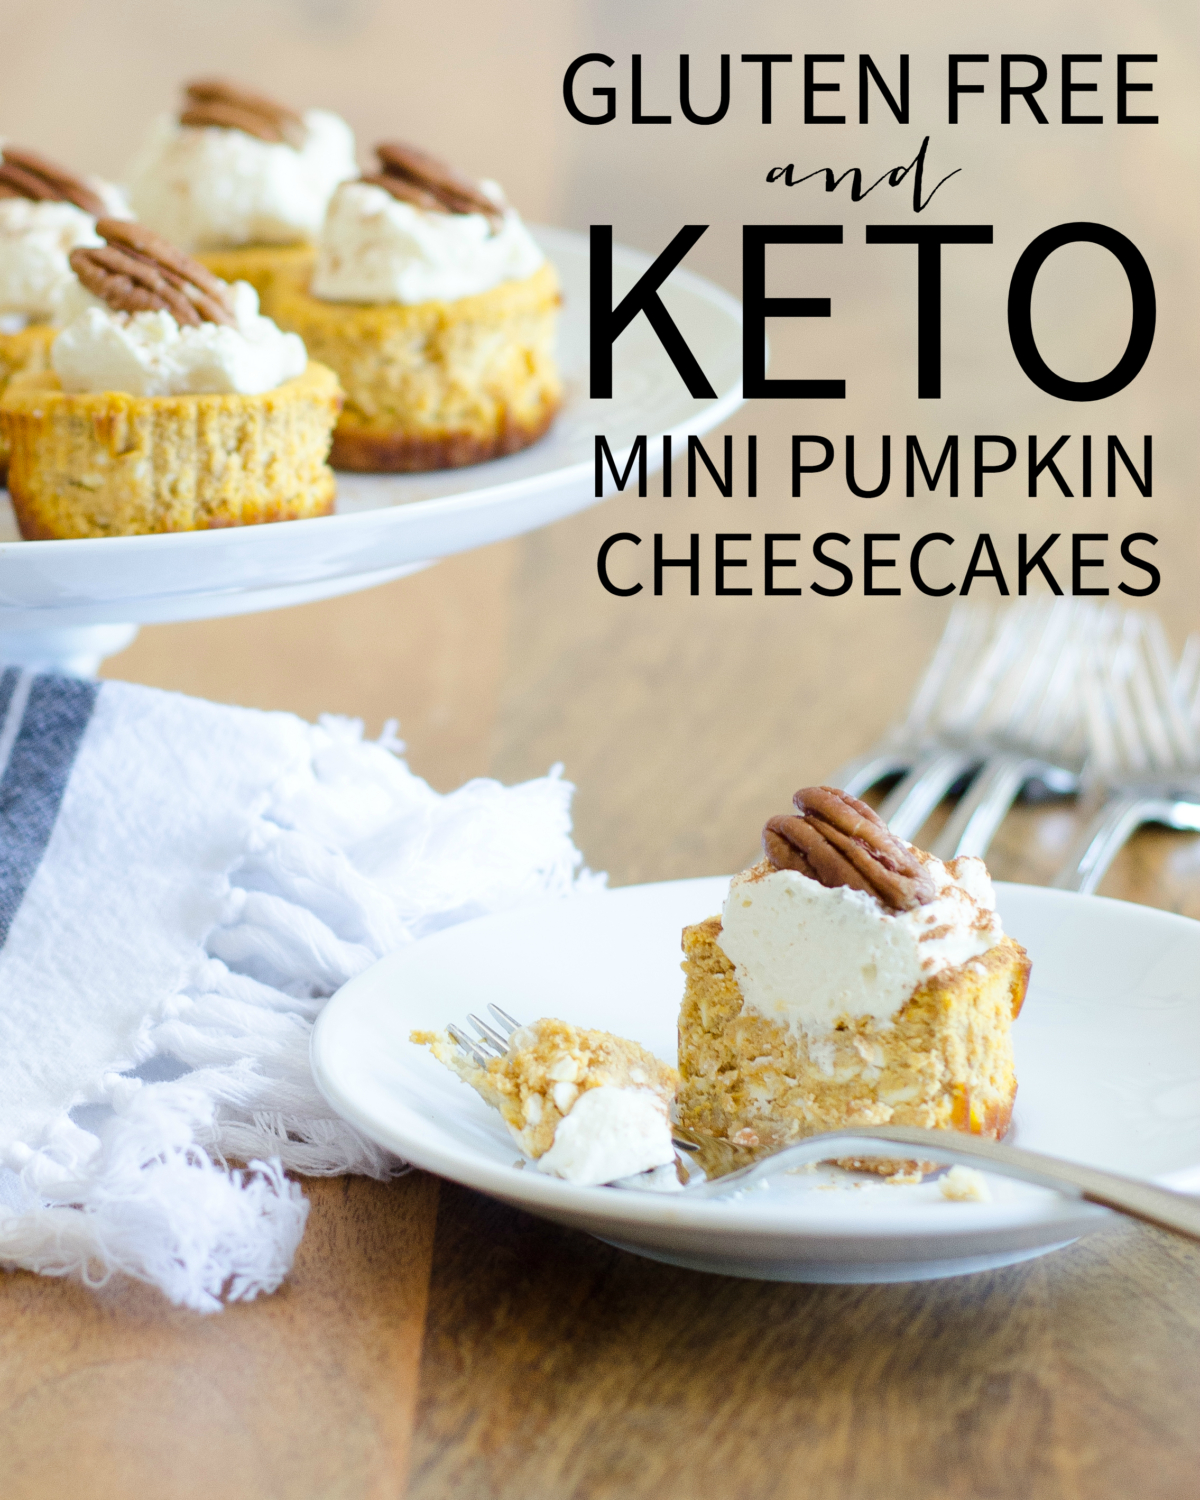 Gluten free and keto mini pumpkin cheesecakes are a perfect fall treat. All the pumpkin spice flavors you love and only 1.8 g of net carbs!